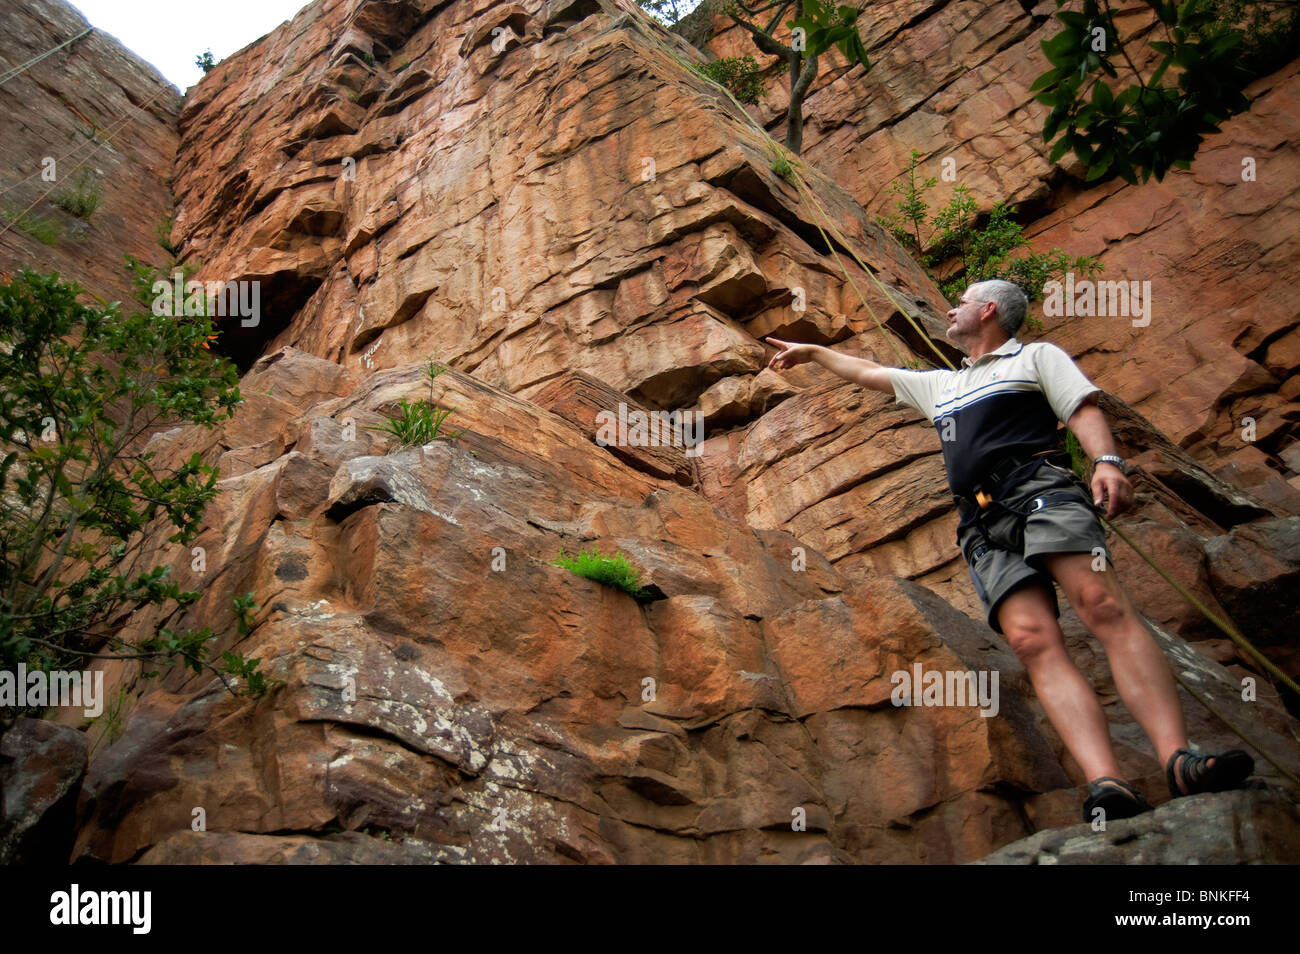 Middle aged Caucasian male at the base of a cliff. Monteseel Conservancy, Inchanga, Kwa-zulu Natal South Africa - Stock Image